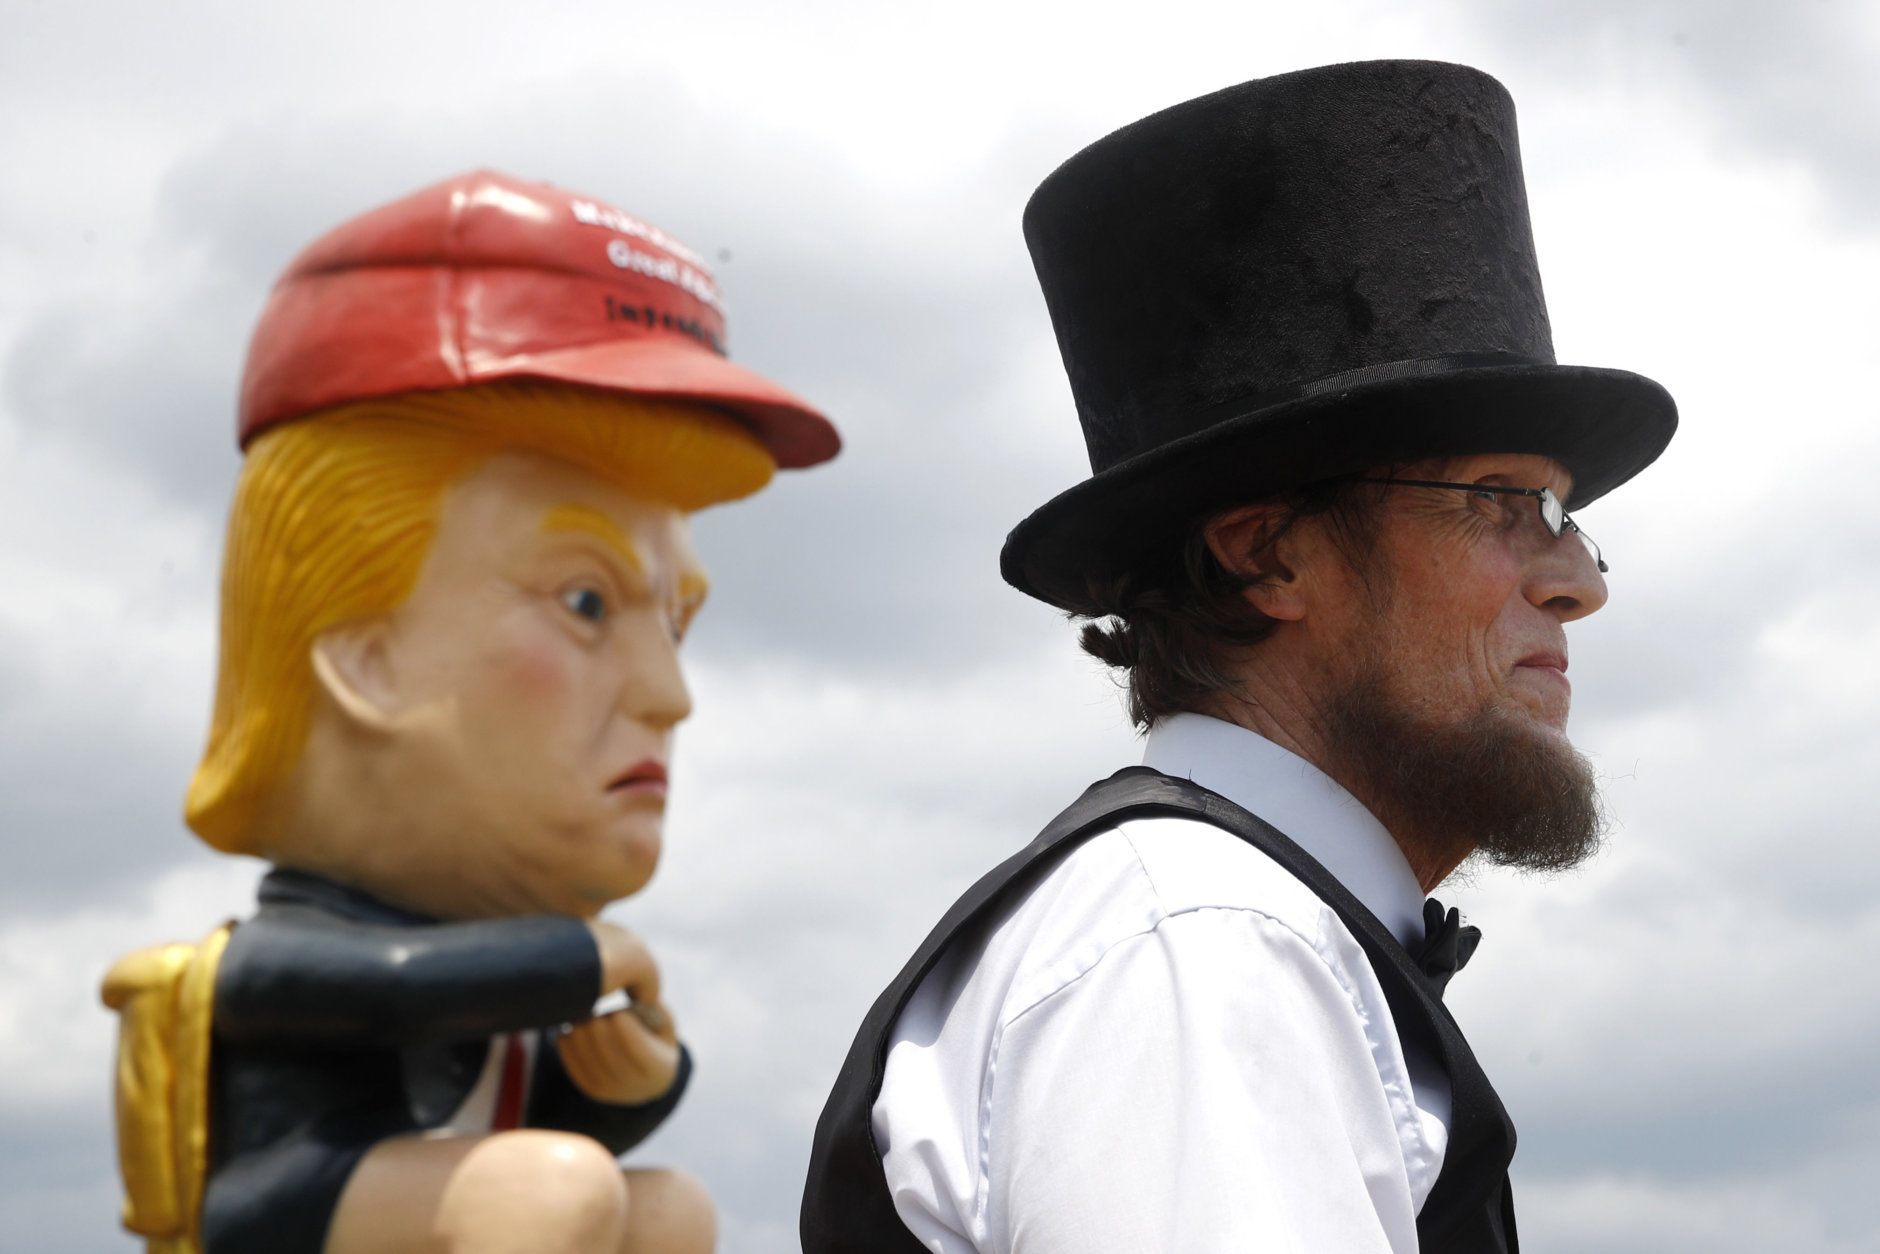 Everett Loud, of Corning, N.Y., and dressed as President Abraham Lincoln, stands near a sculpture of President Donald Trump holding a cell phone while sitting on a toilet before Independence Day celebrations, Thursday, July 4, 2019, on the National Mall in Washington. (AP Photo/Patrick Semansky)